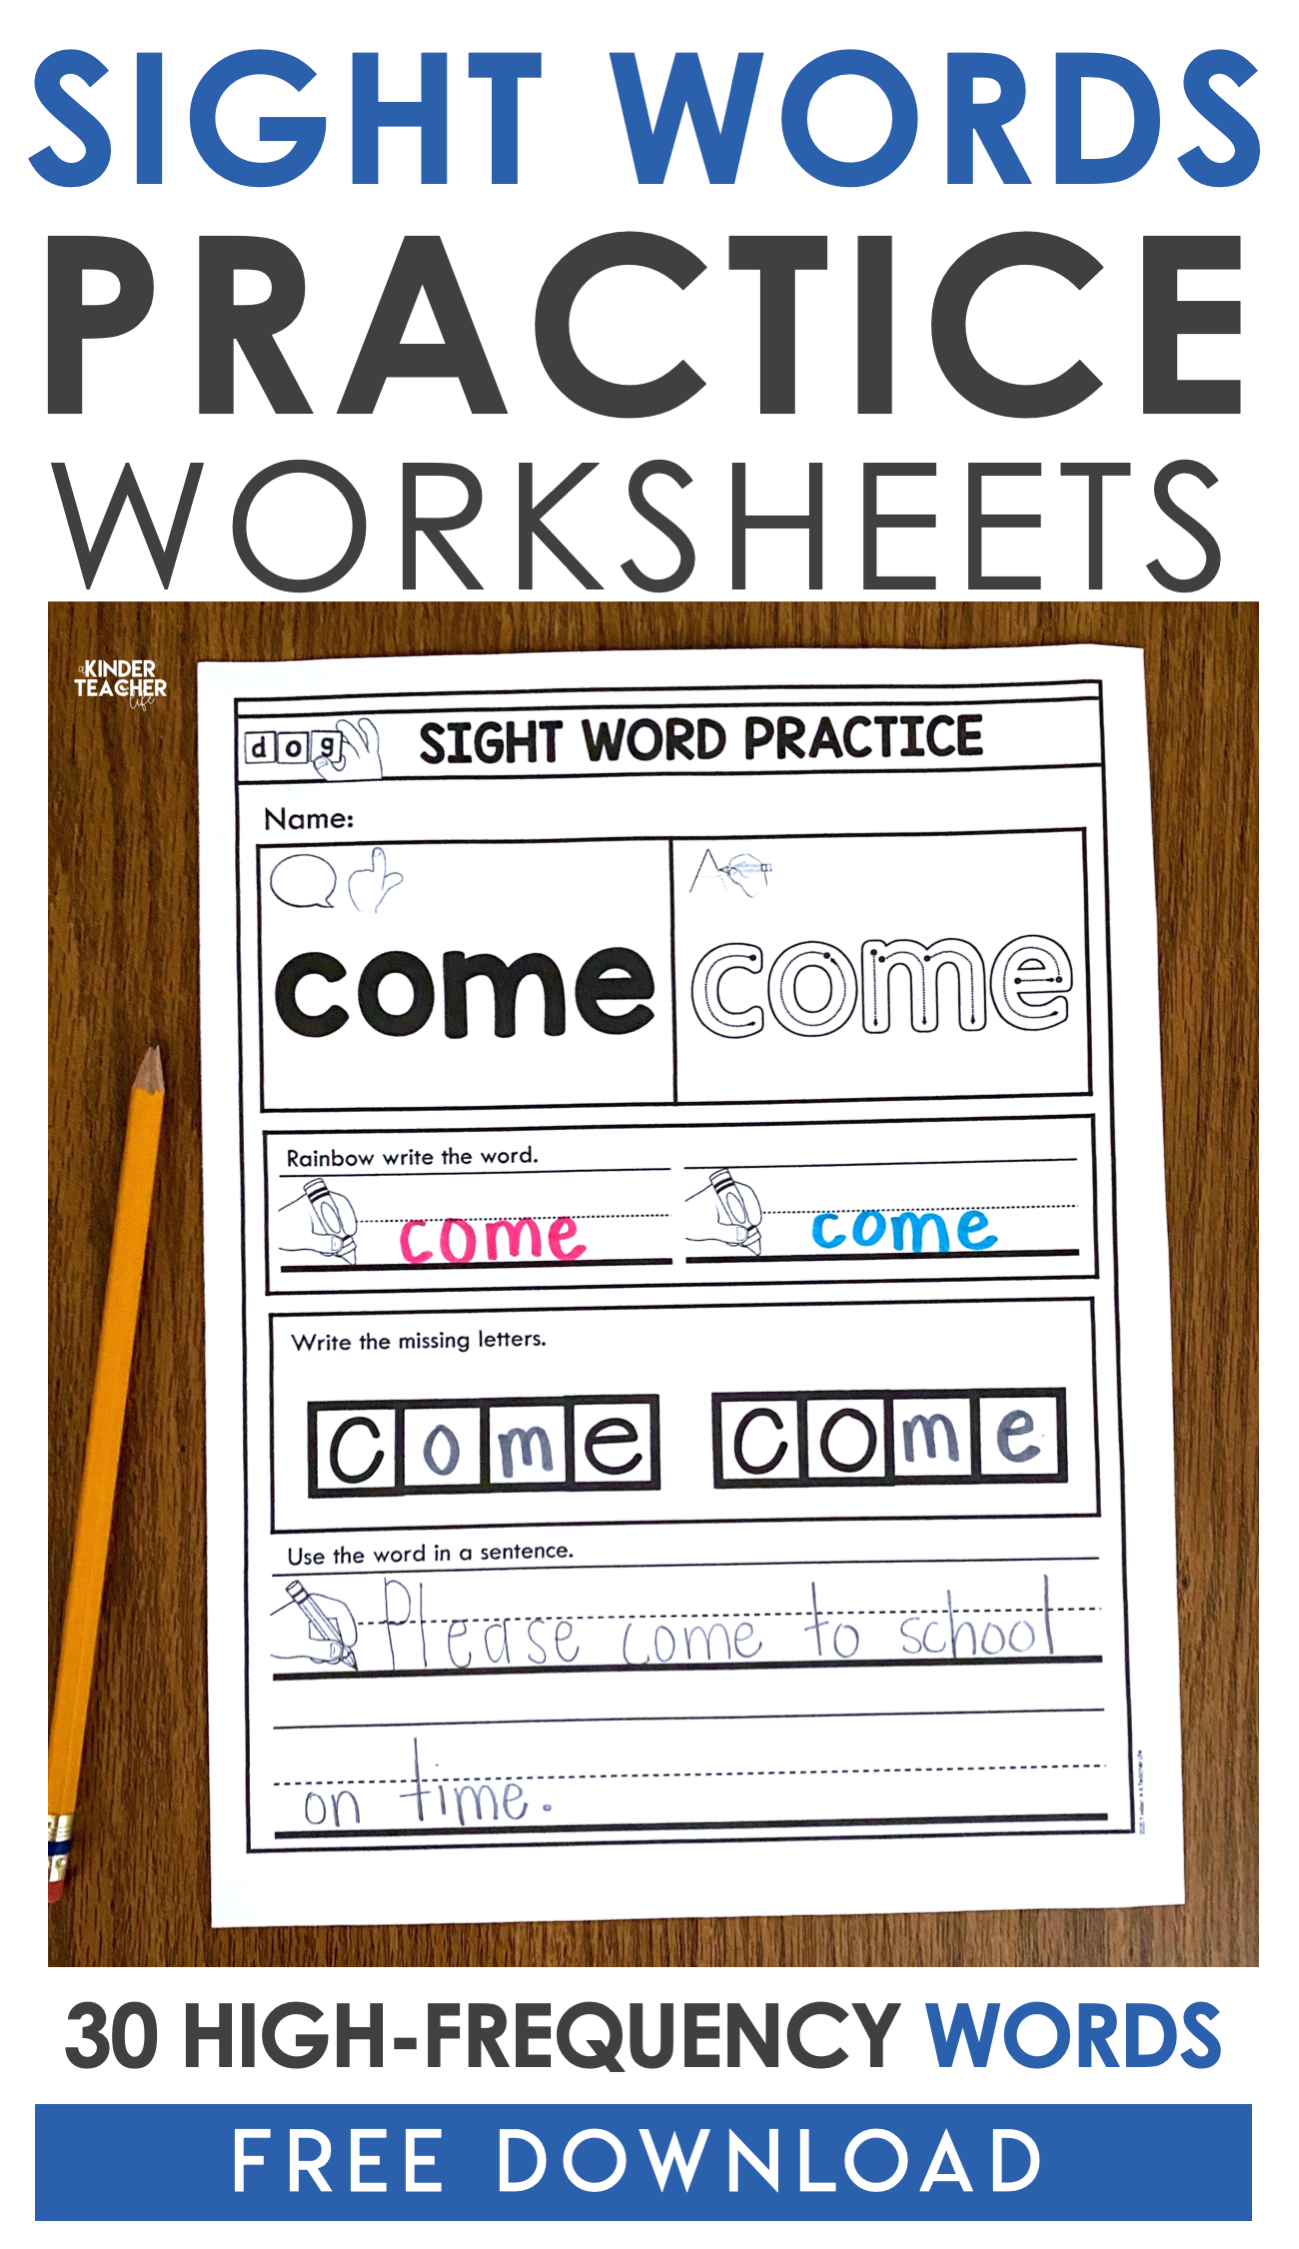 How To Introduce Sight Words In